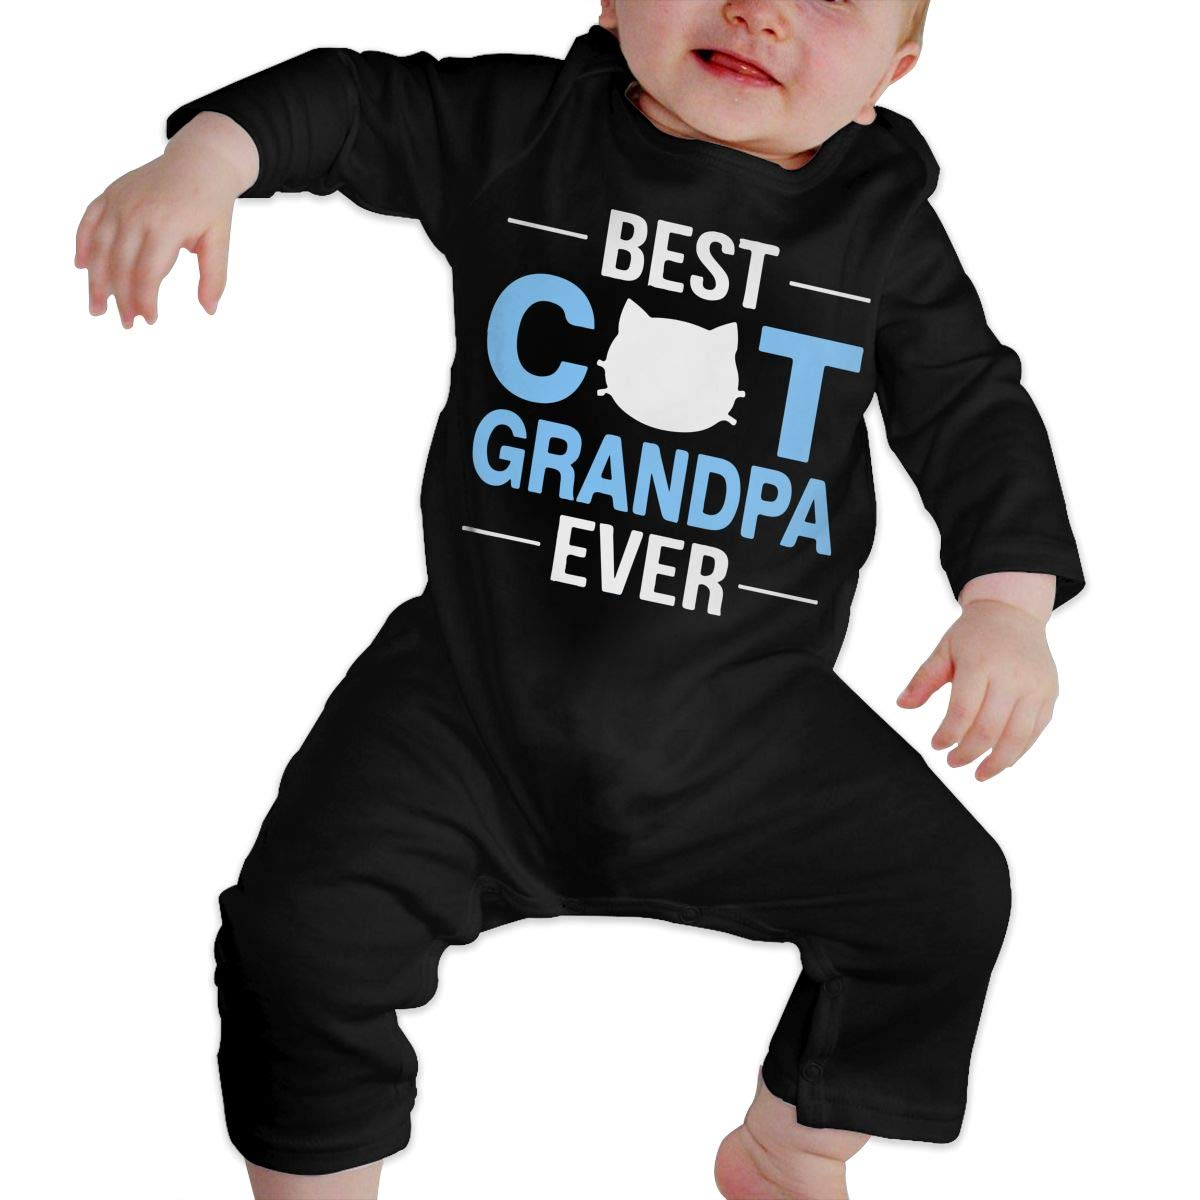 Toddler Baby Girls Best Cat Grandpa Ever Long Sleeve Romper Jumpsuit Cute Cotton Bodysuit Outfits Clothes